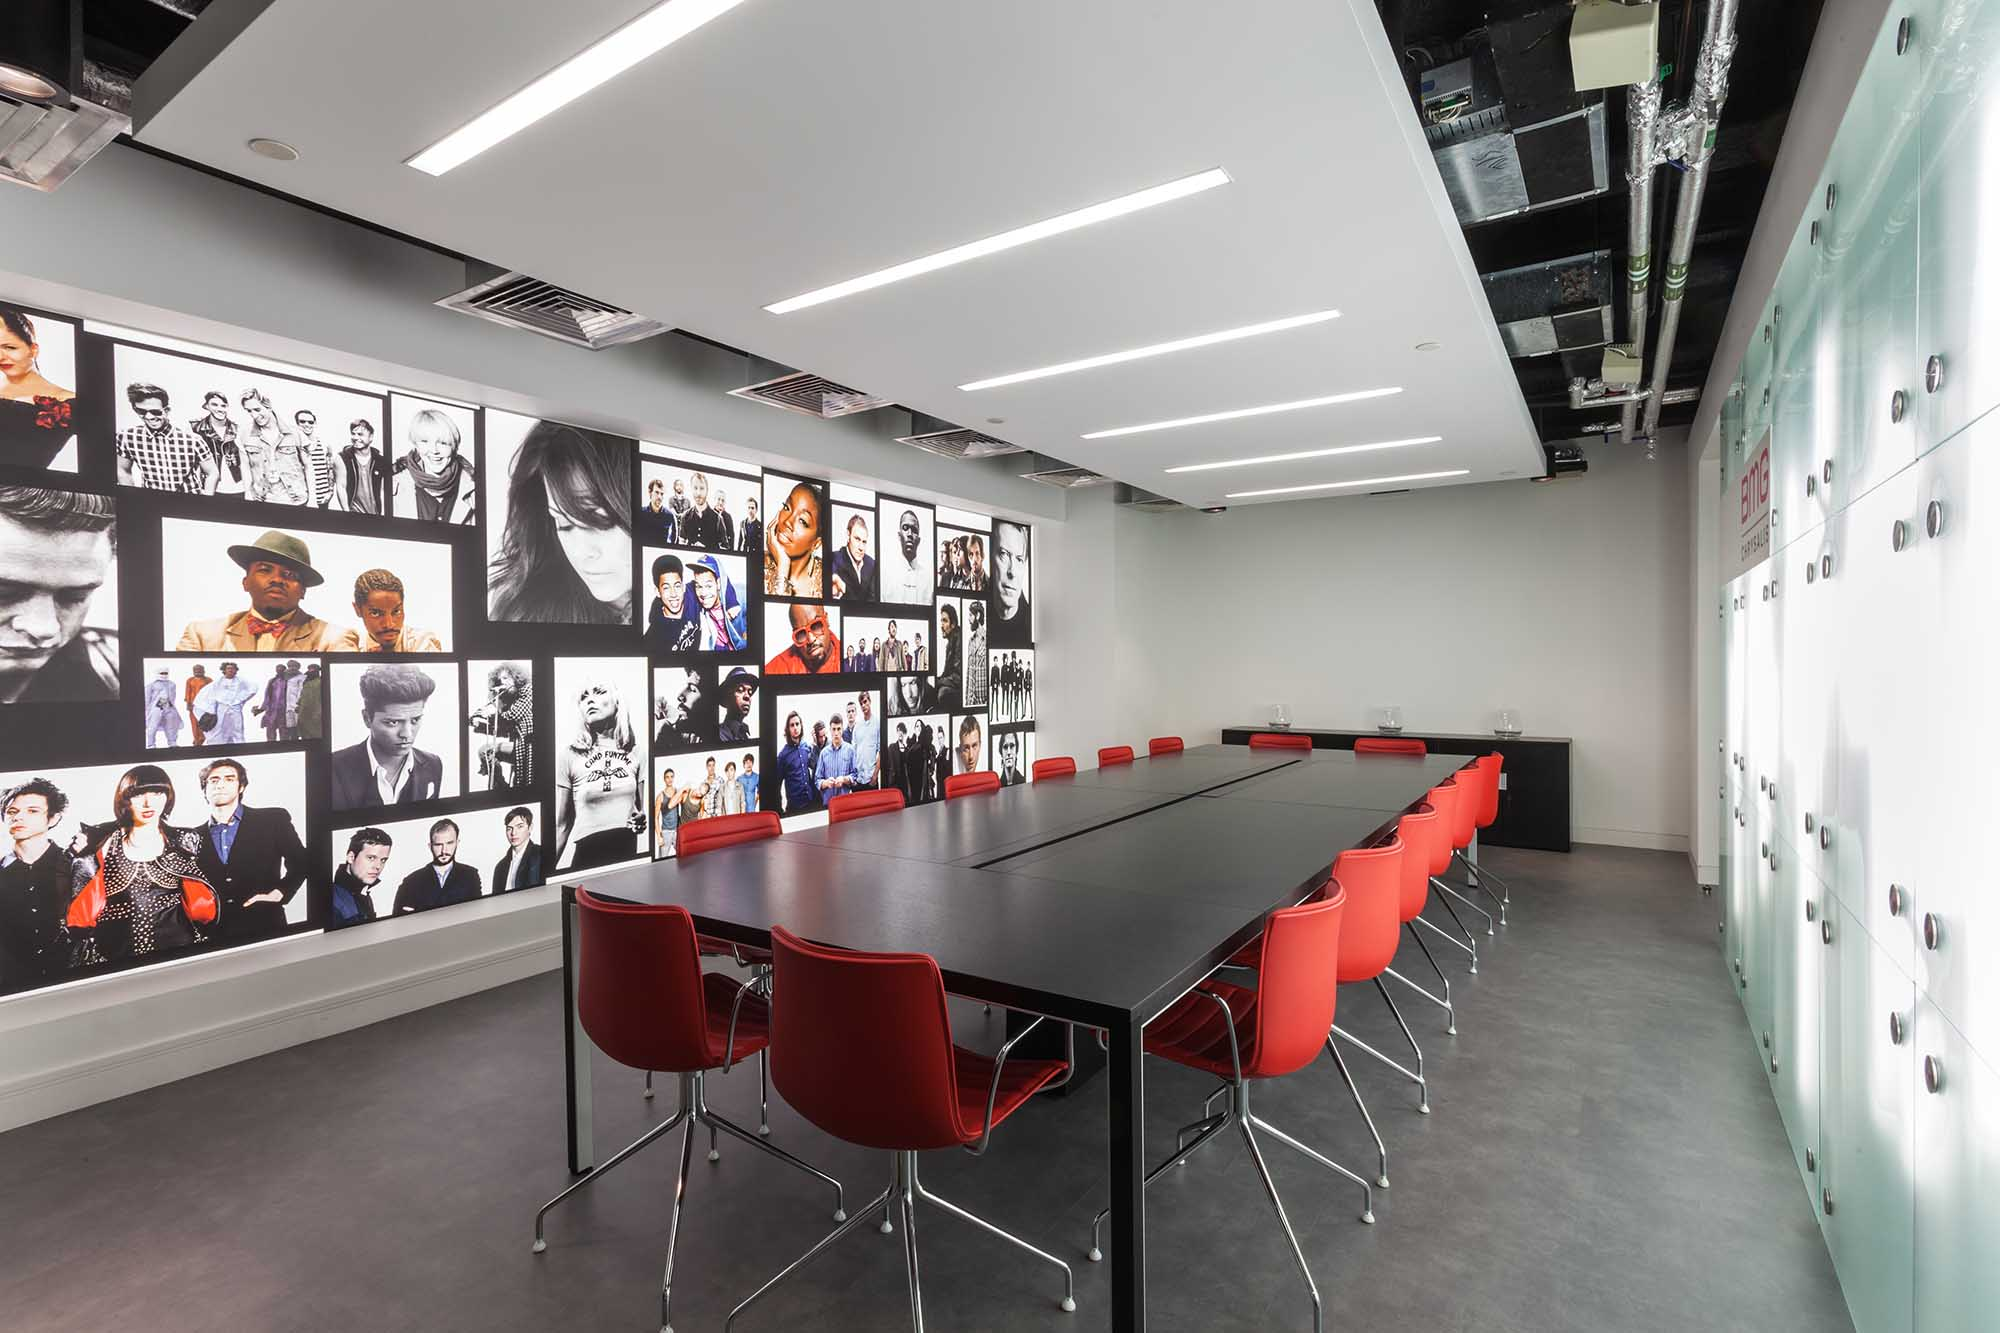 BMG Chrysalis Meeting ROom